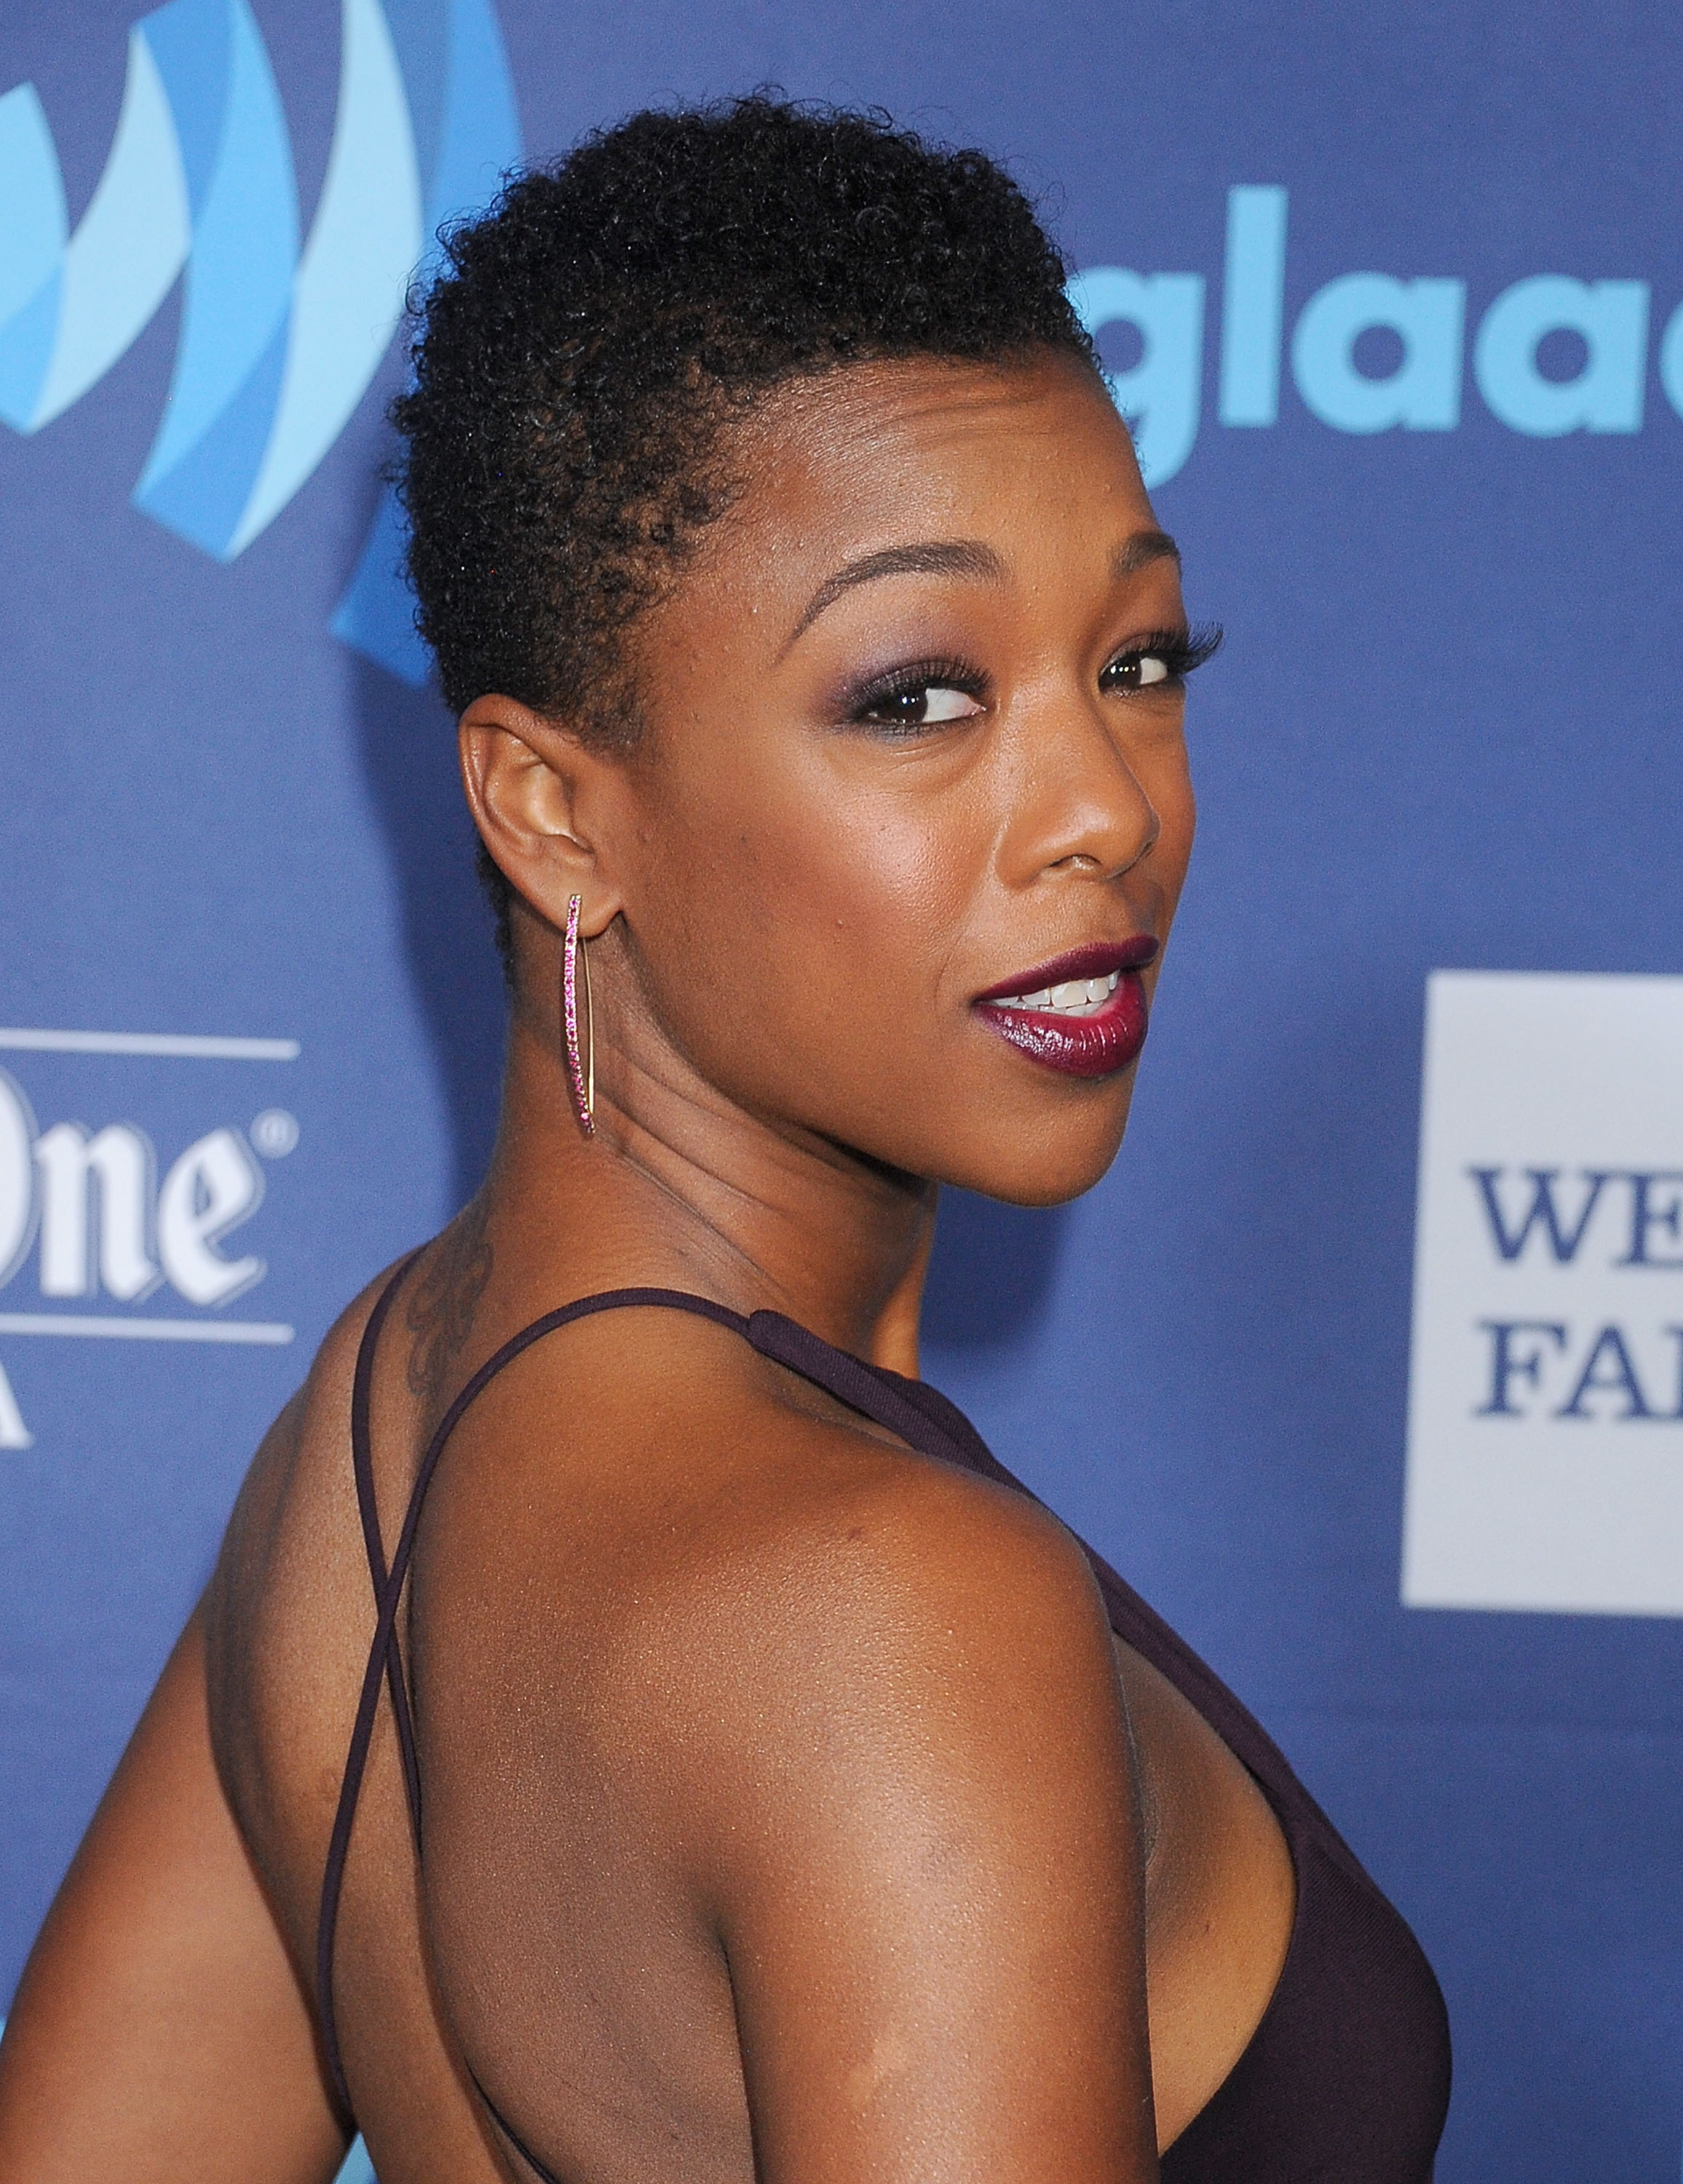 Stupendous 45 Black Hairstyles For Short Hair Short Haircuts For Black Women Short Hairstyles Gunalazisus